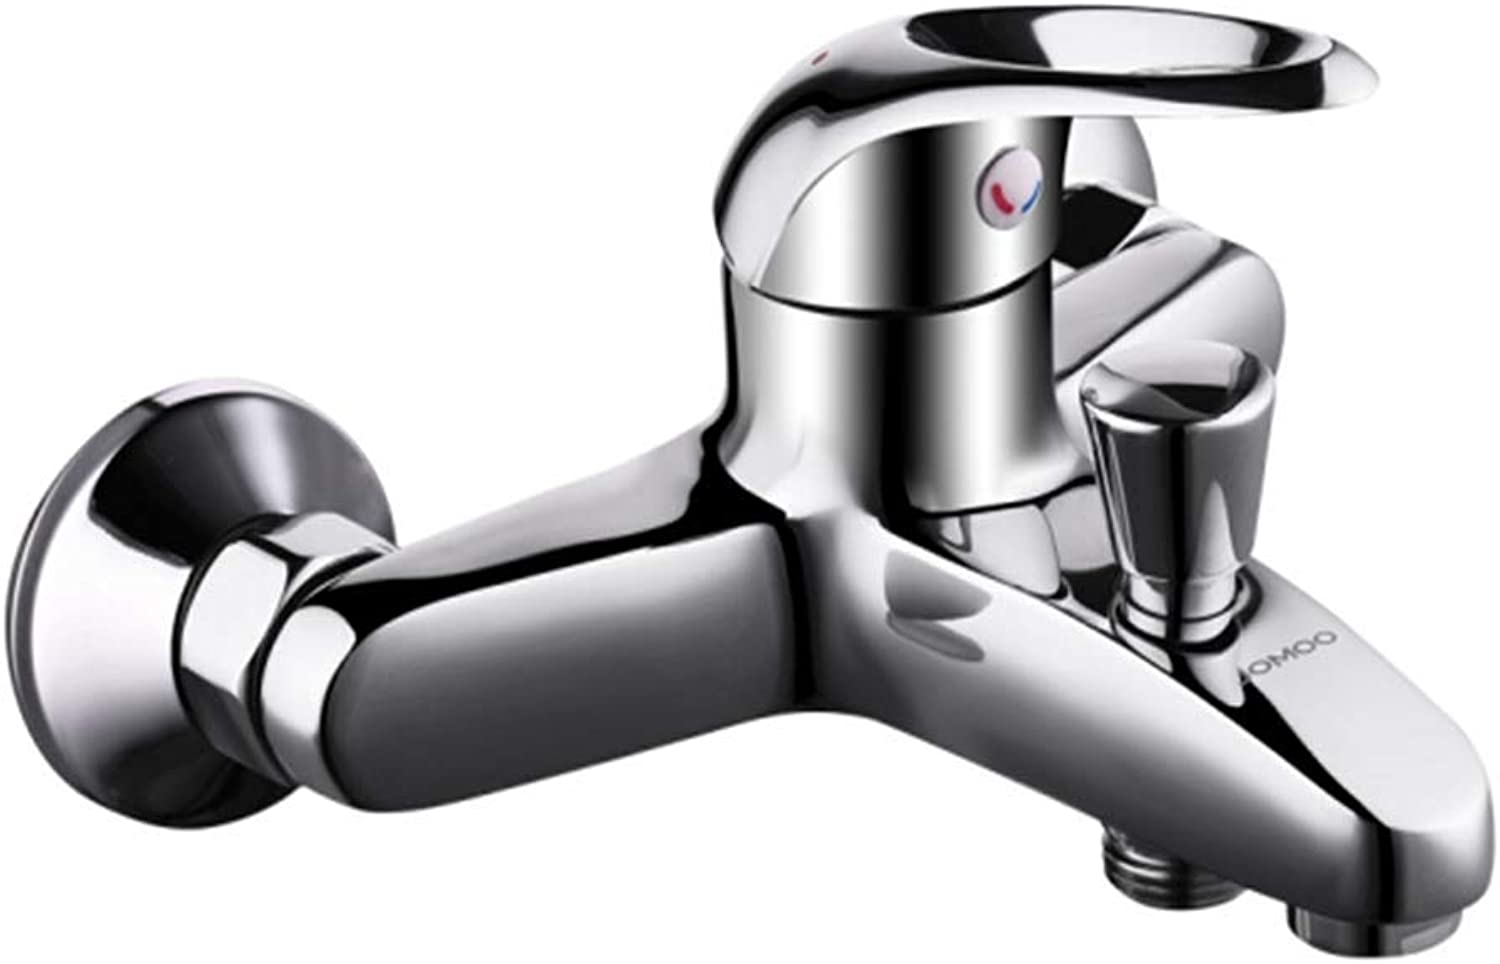 Kitchen Taps Faucet Modern Kitchen Sink Taps Stainless Steelshower Faucet, Shower Faucet, Shower Faucet, Shower Faucet, Bathroom Cold and Hot Water Faucet